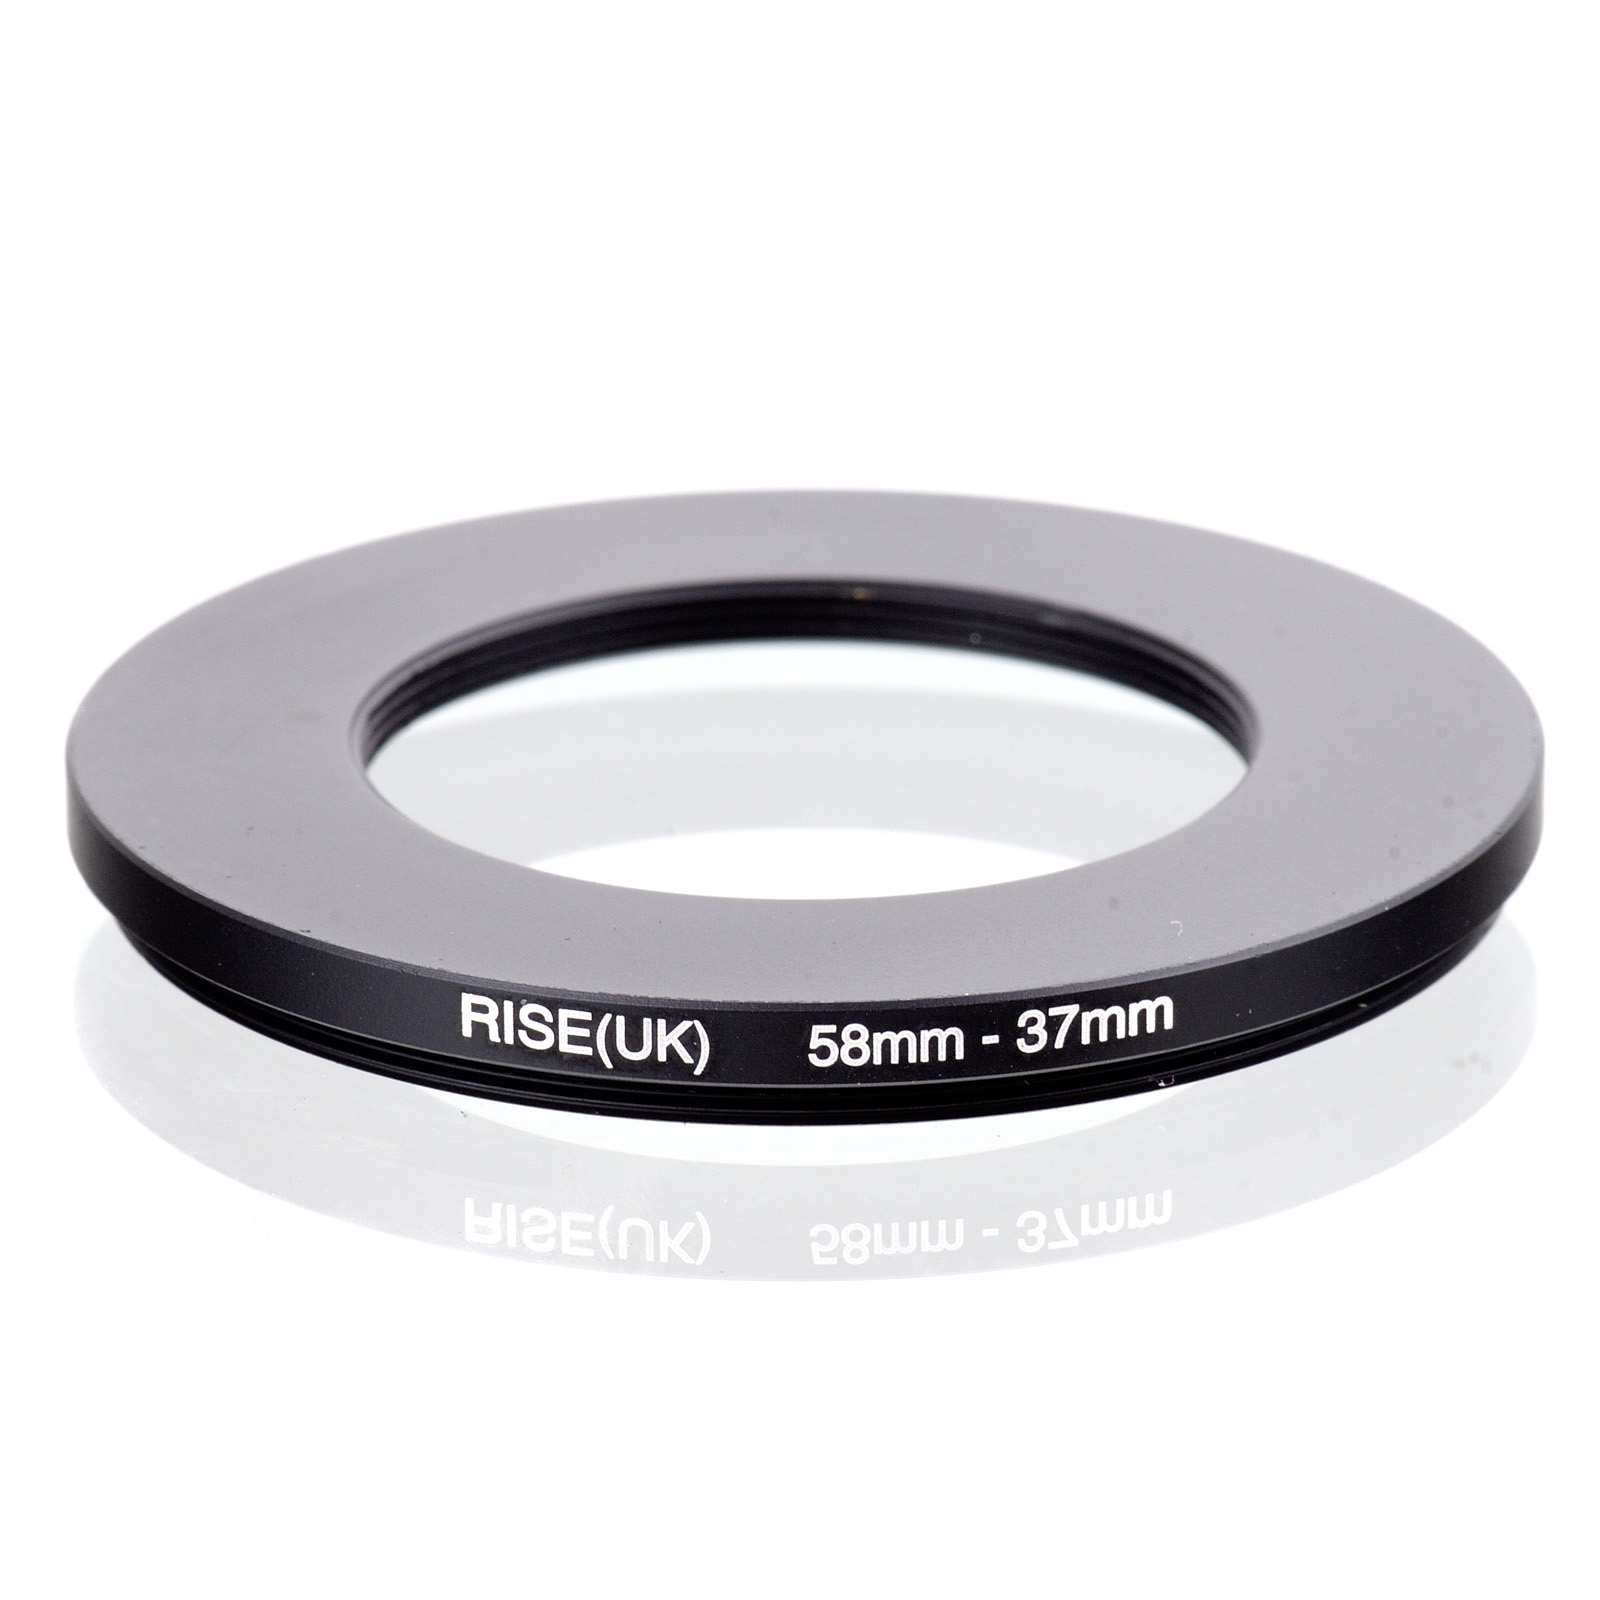 RISE(UK) 58mm-37mm 58-37 Mm 58 To 37 Step Down Filter Ring Adapter